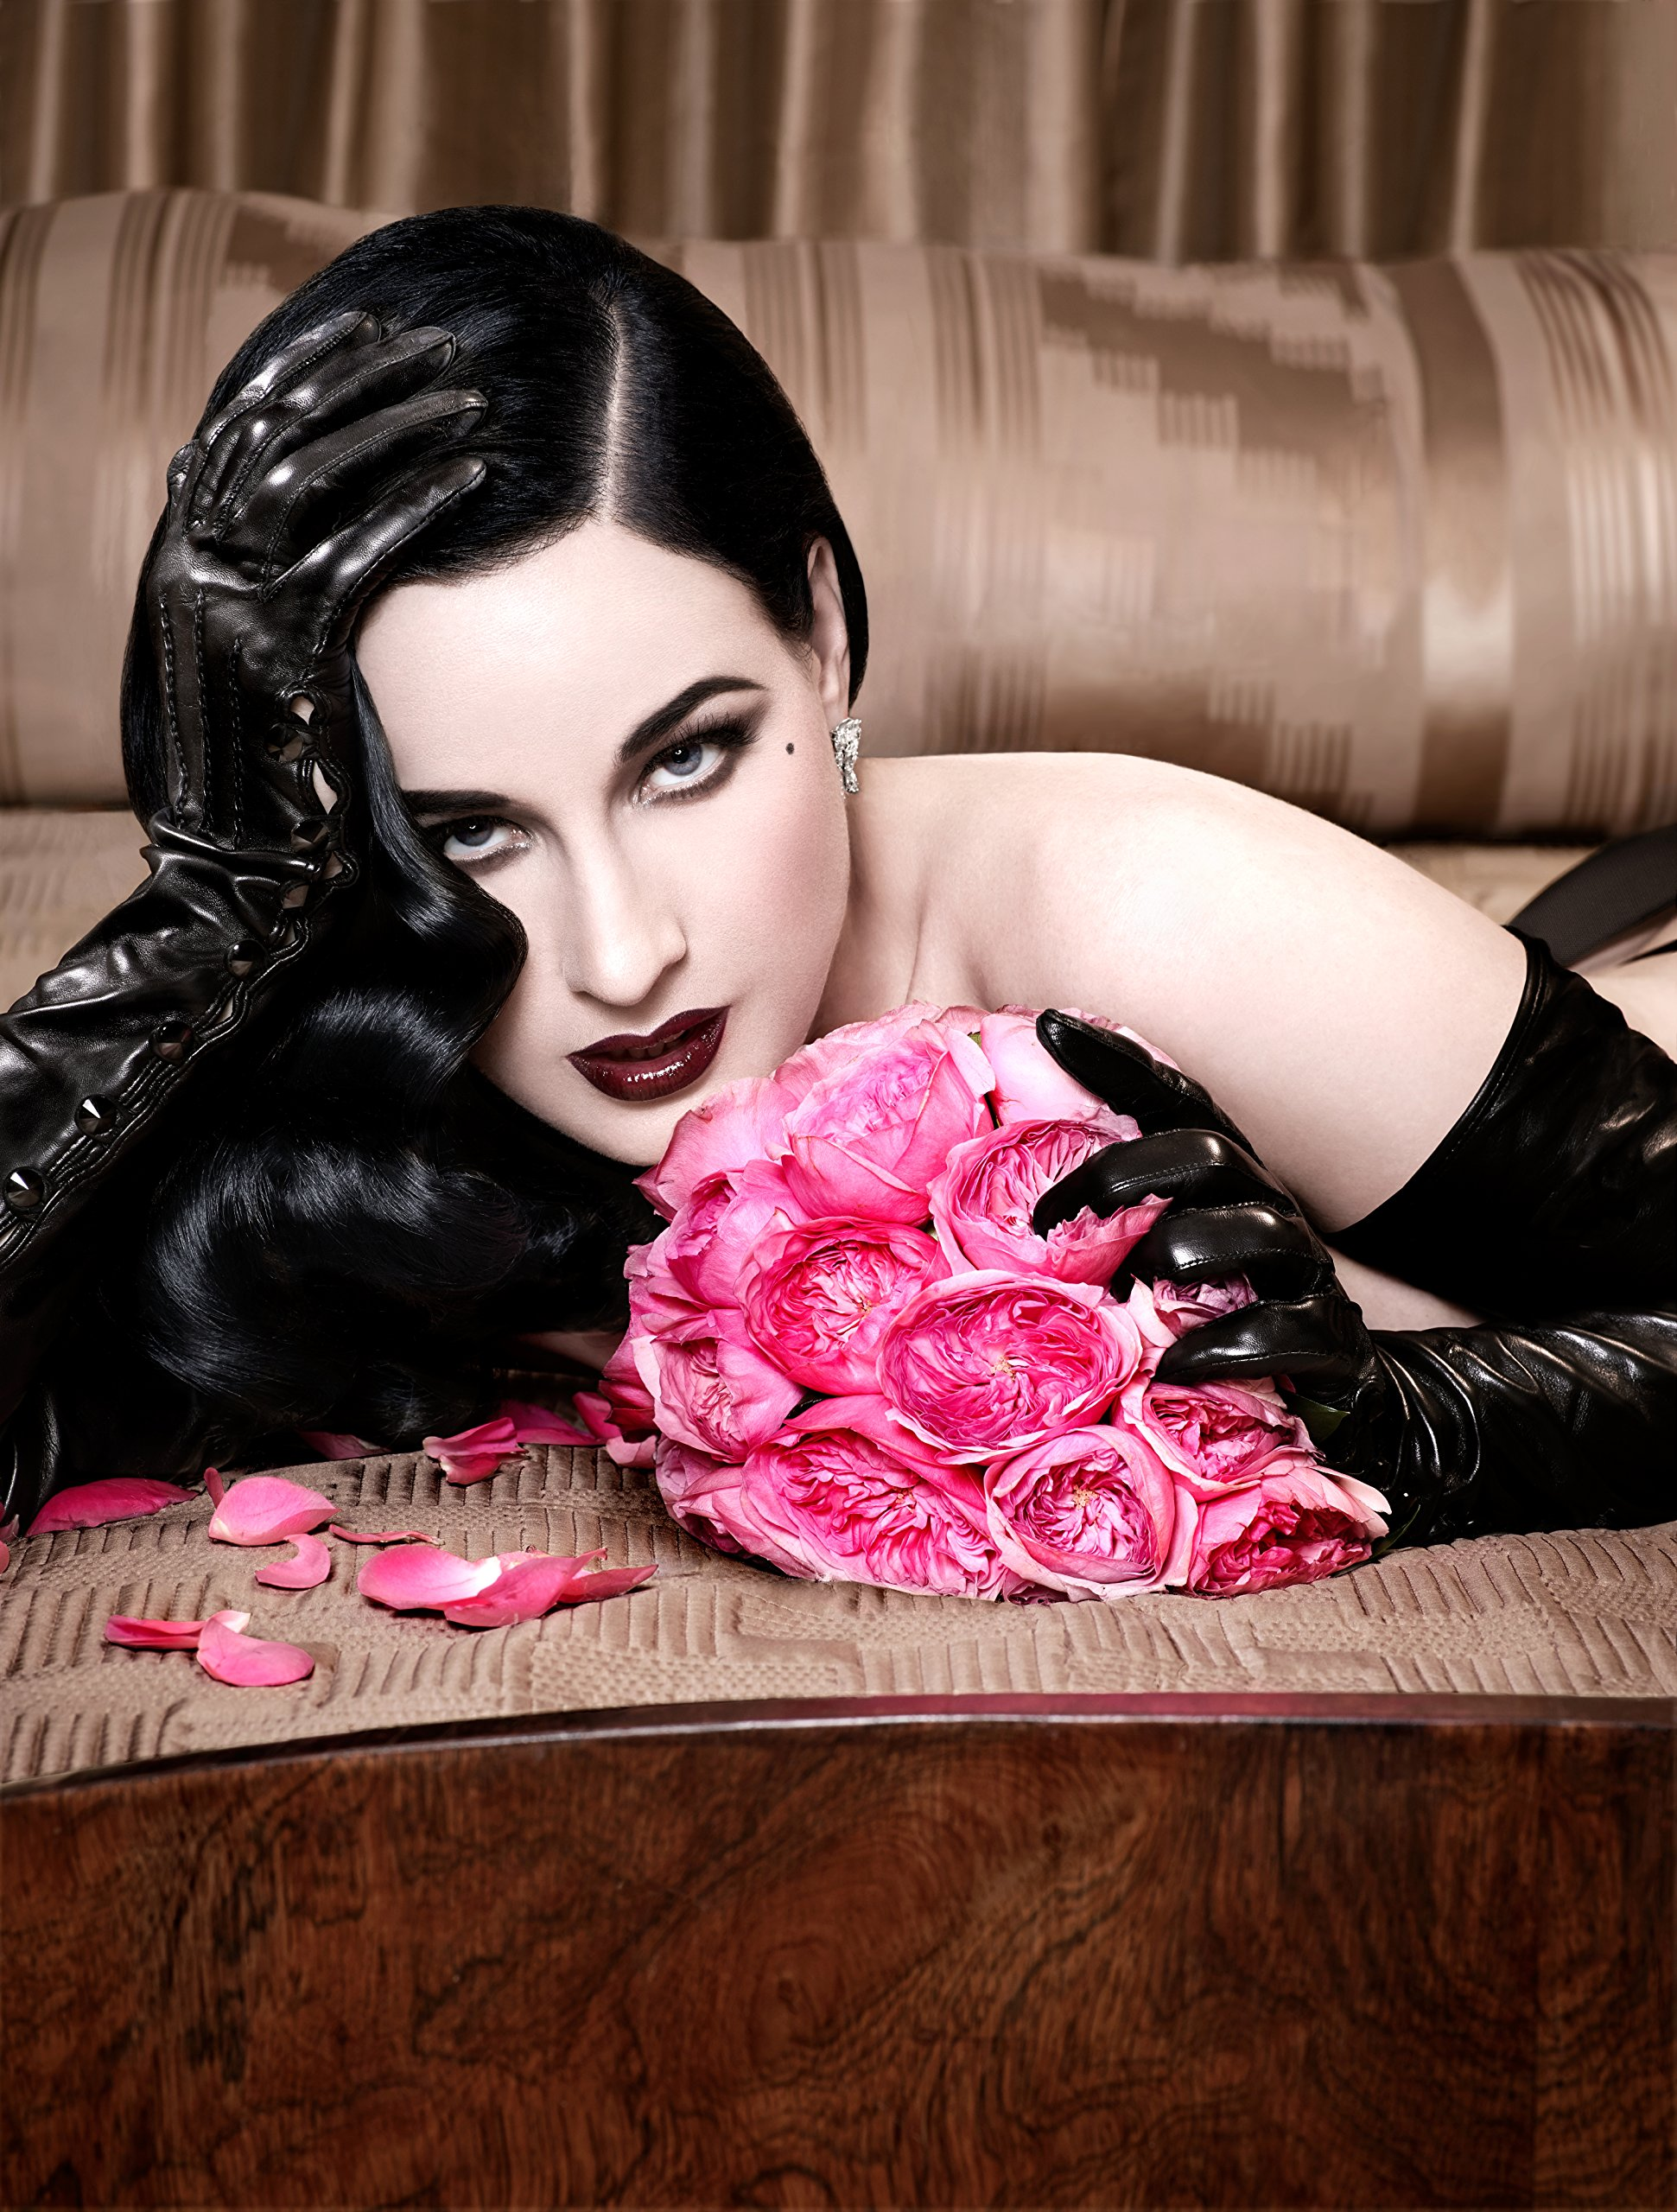 b4f2d2efe7de1 Your Beauty Mark: The Ultimate Guide to Eccentric Glamour: Dita Von Teese:  9780060722715: Amazon.com: Books